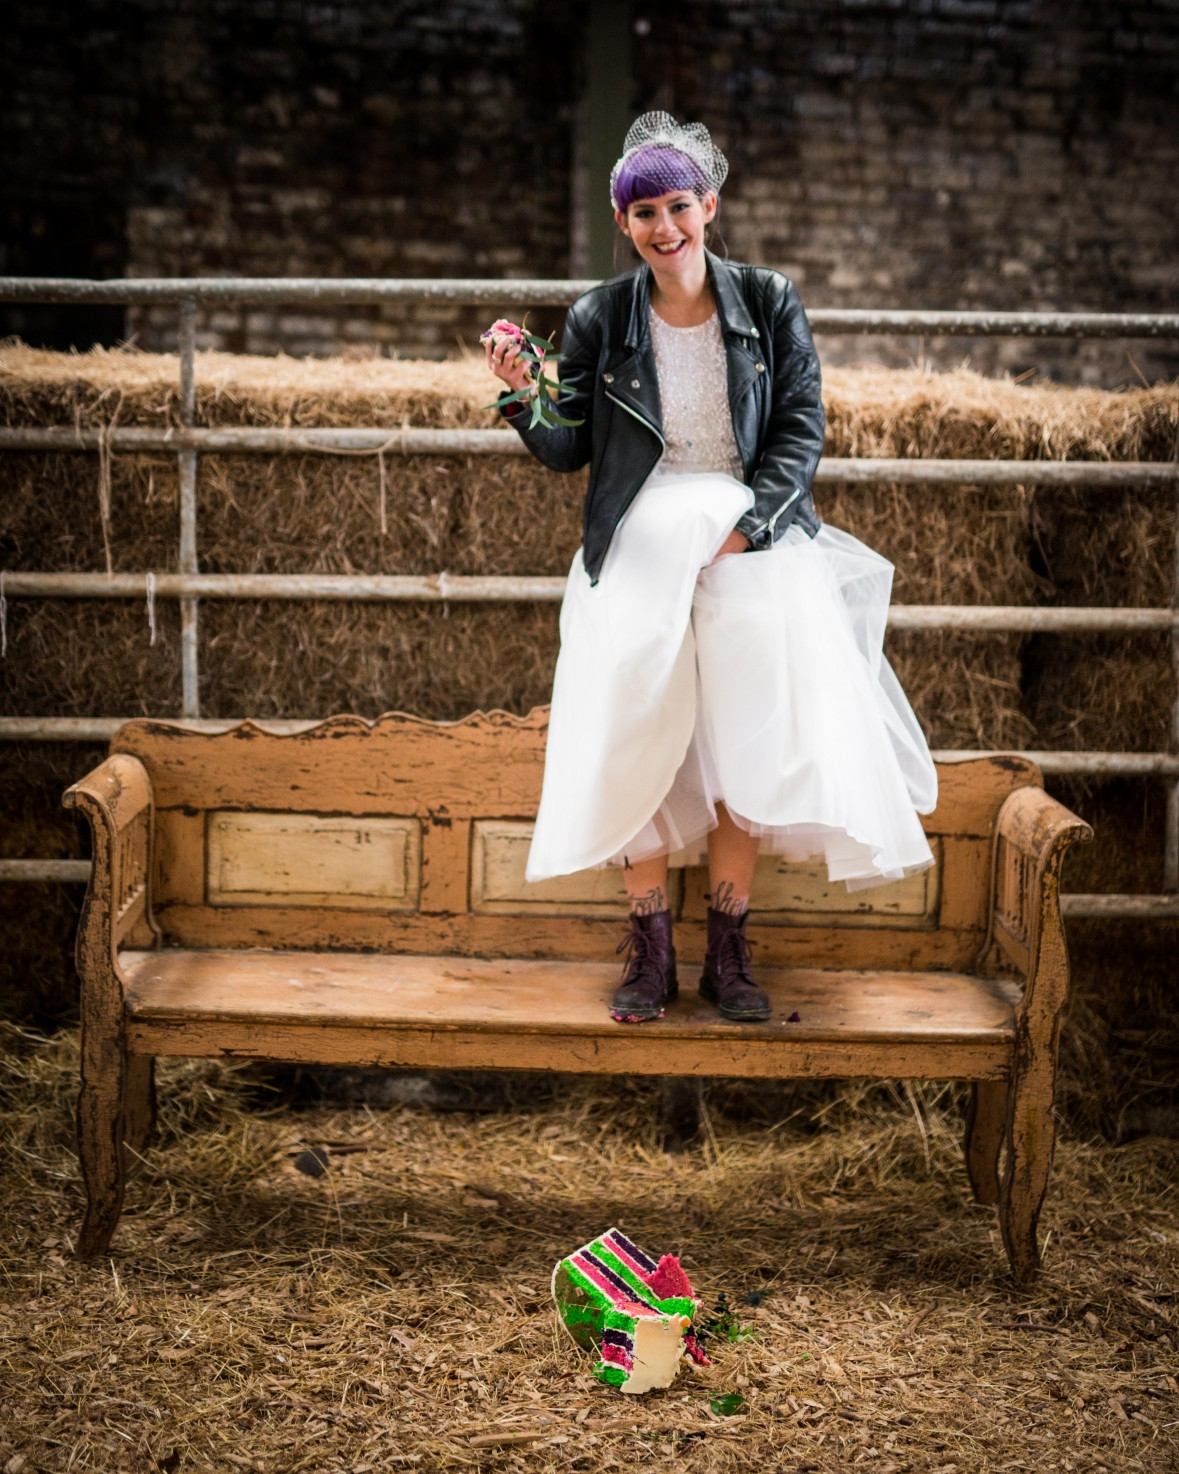 Peacock barns - alternative unconventional wedding photoshoot - rustic decadent - bride on bench - purple boots